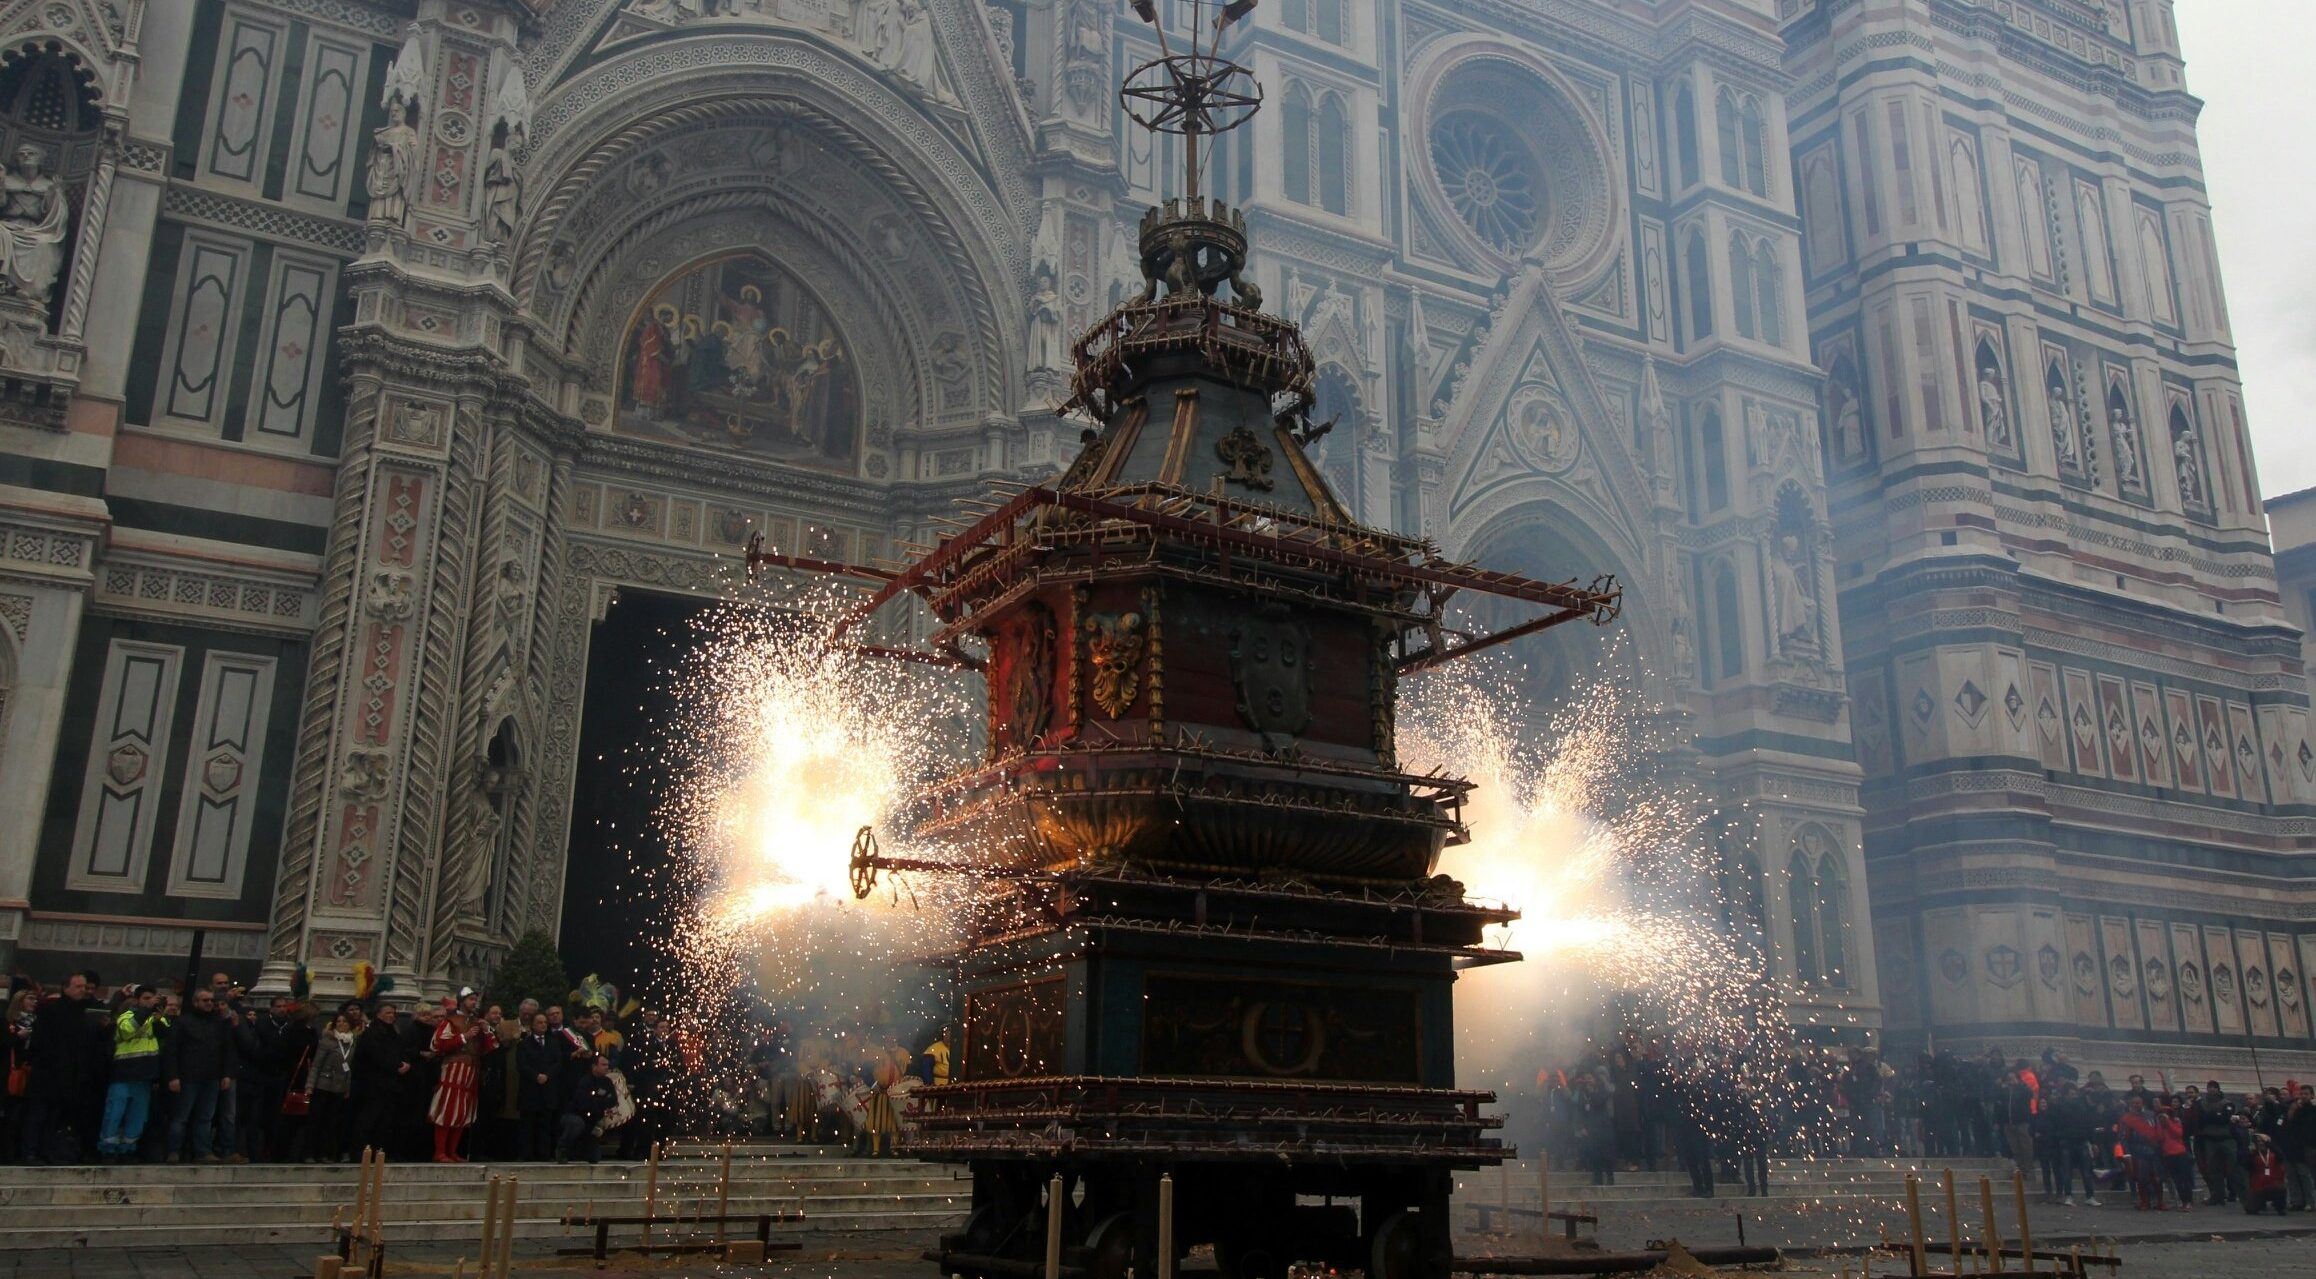 Firework Display At Scoppio Del Carro florence, italy (Picture: Getty)